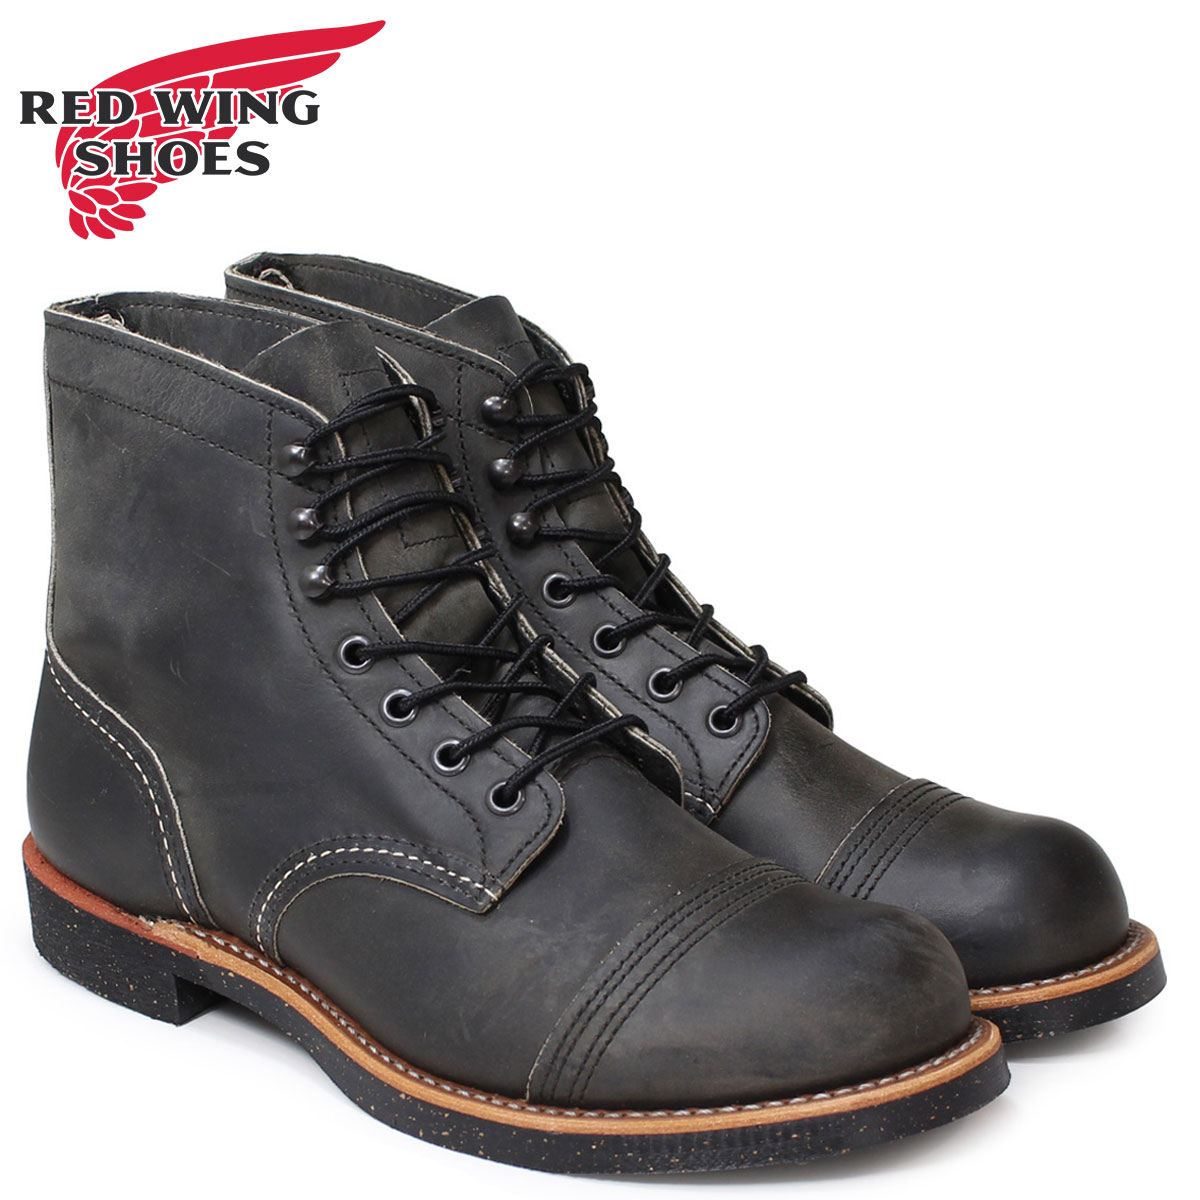 aea188dbe2a Men's RED WING 6INCH IRON RANGER red wing boots work boots iron Ranger D  Wise 8116 8086 [182]